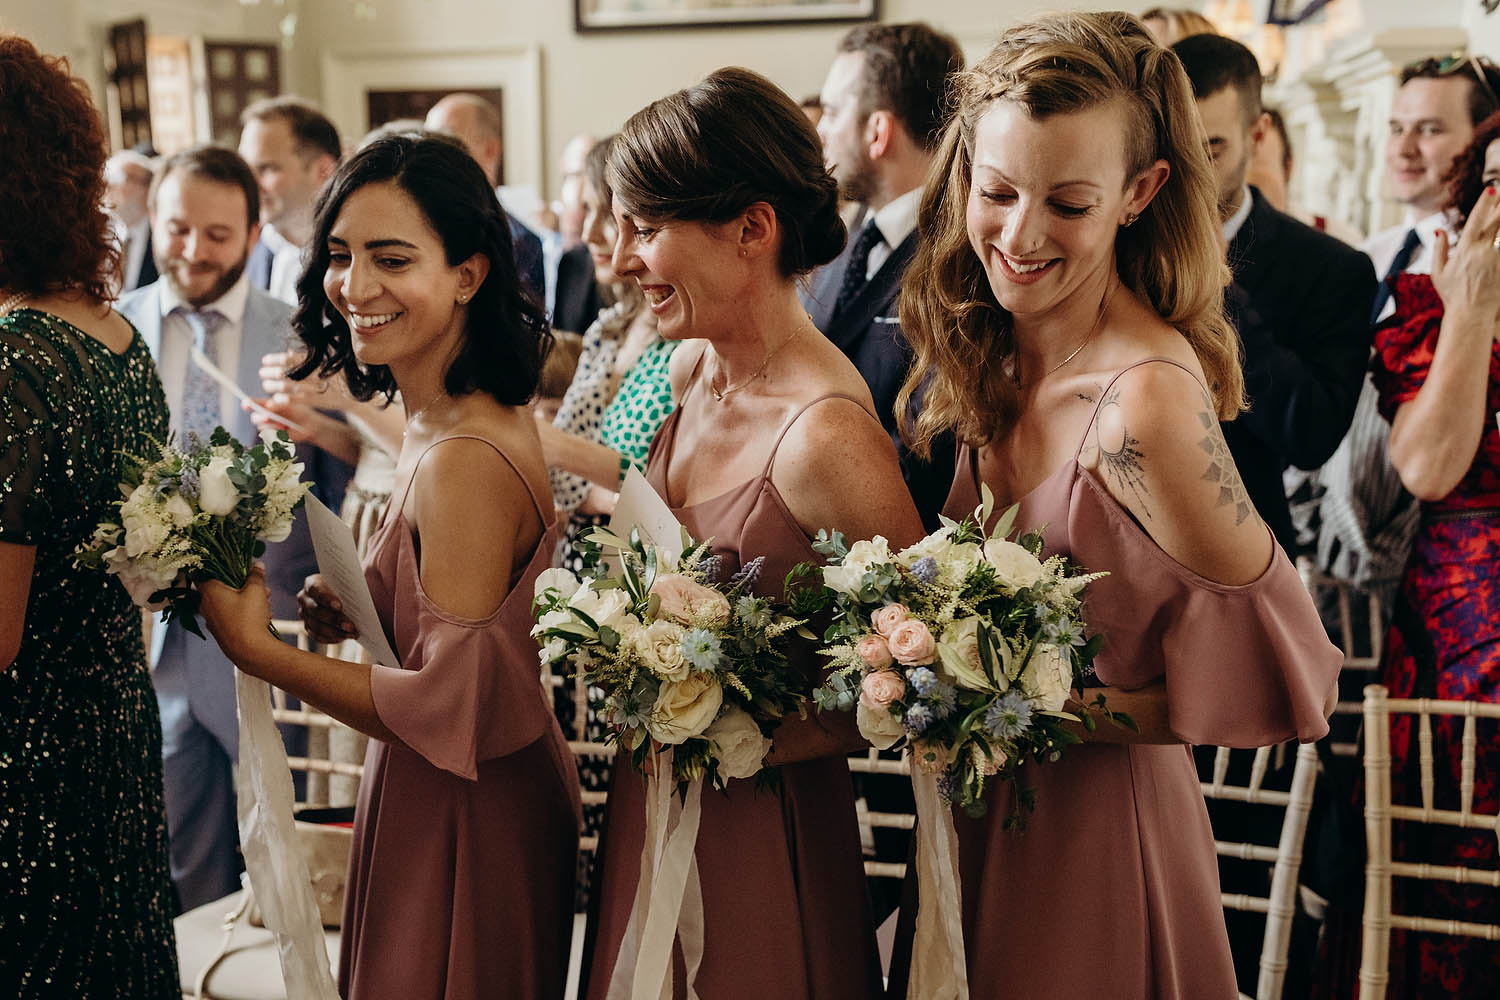 bridesmaids dancing during ceremony